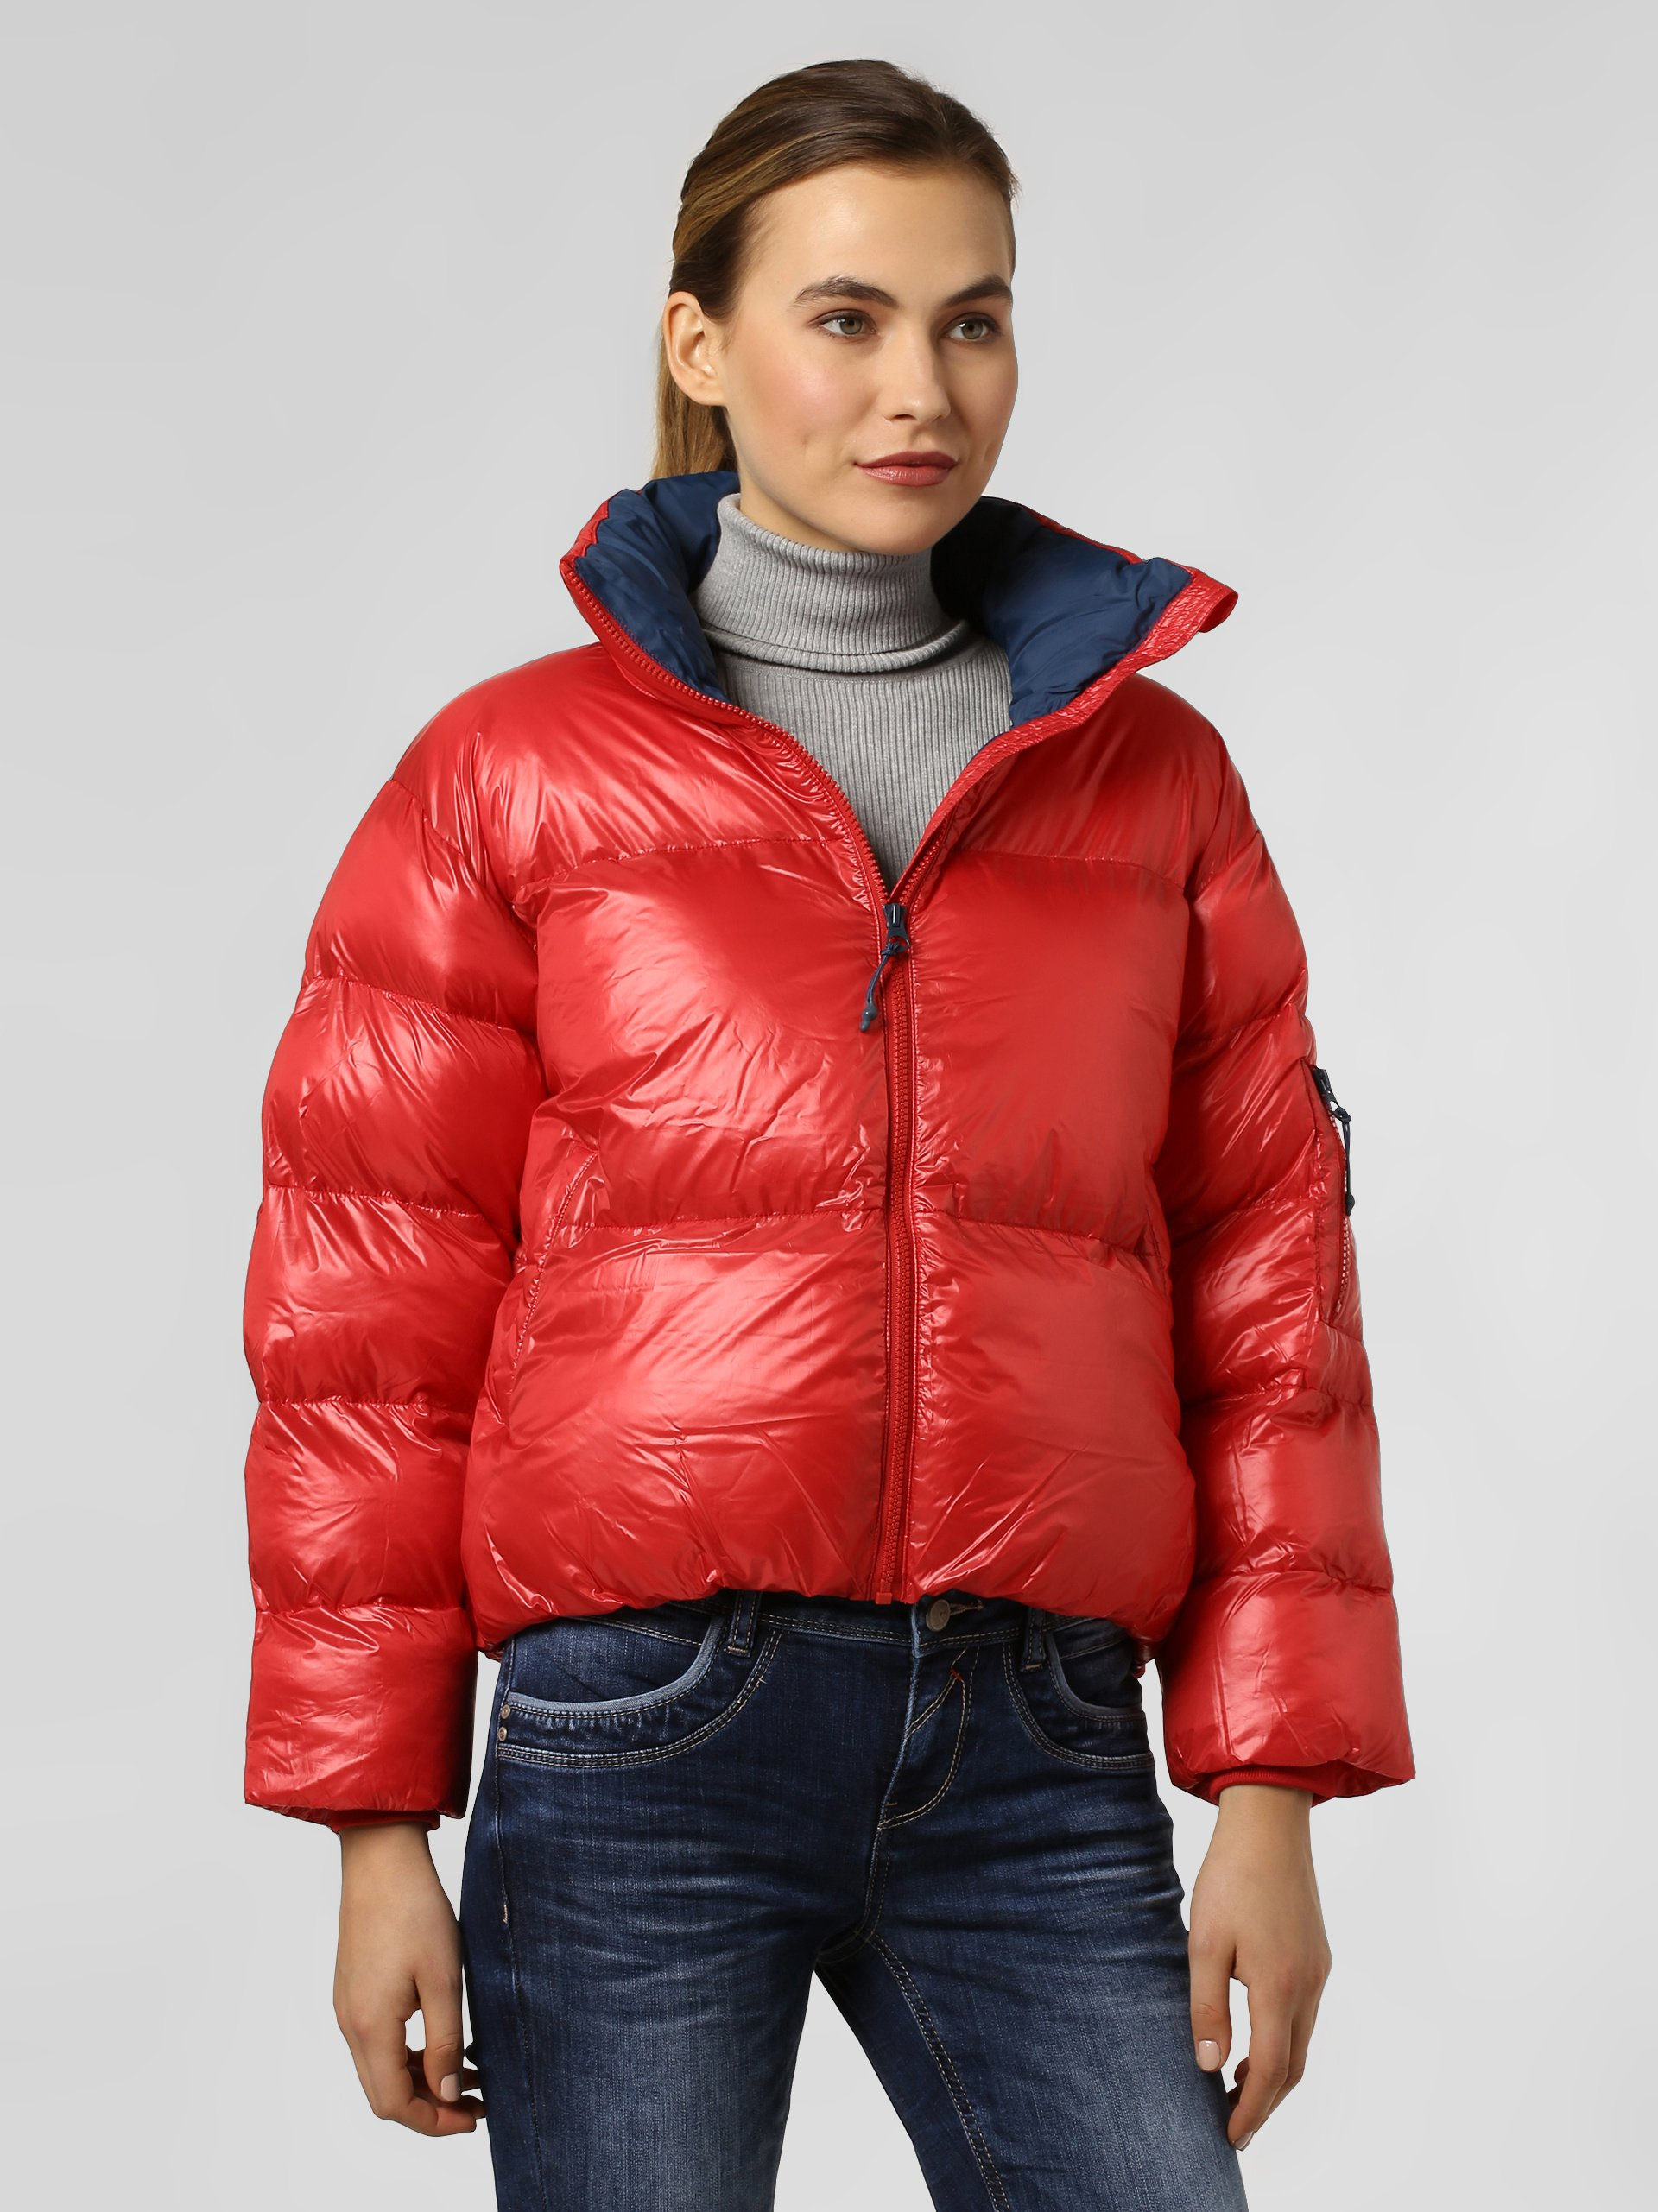 Pepe Jeans Damen Steppjacke - Claire